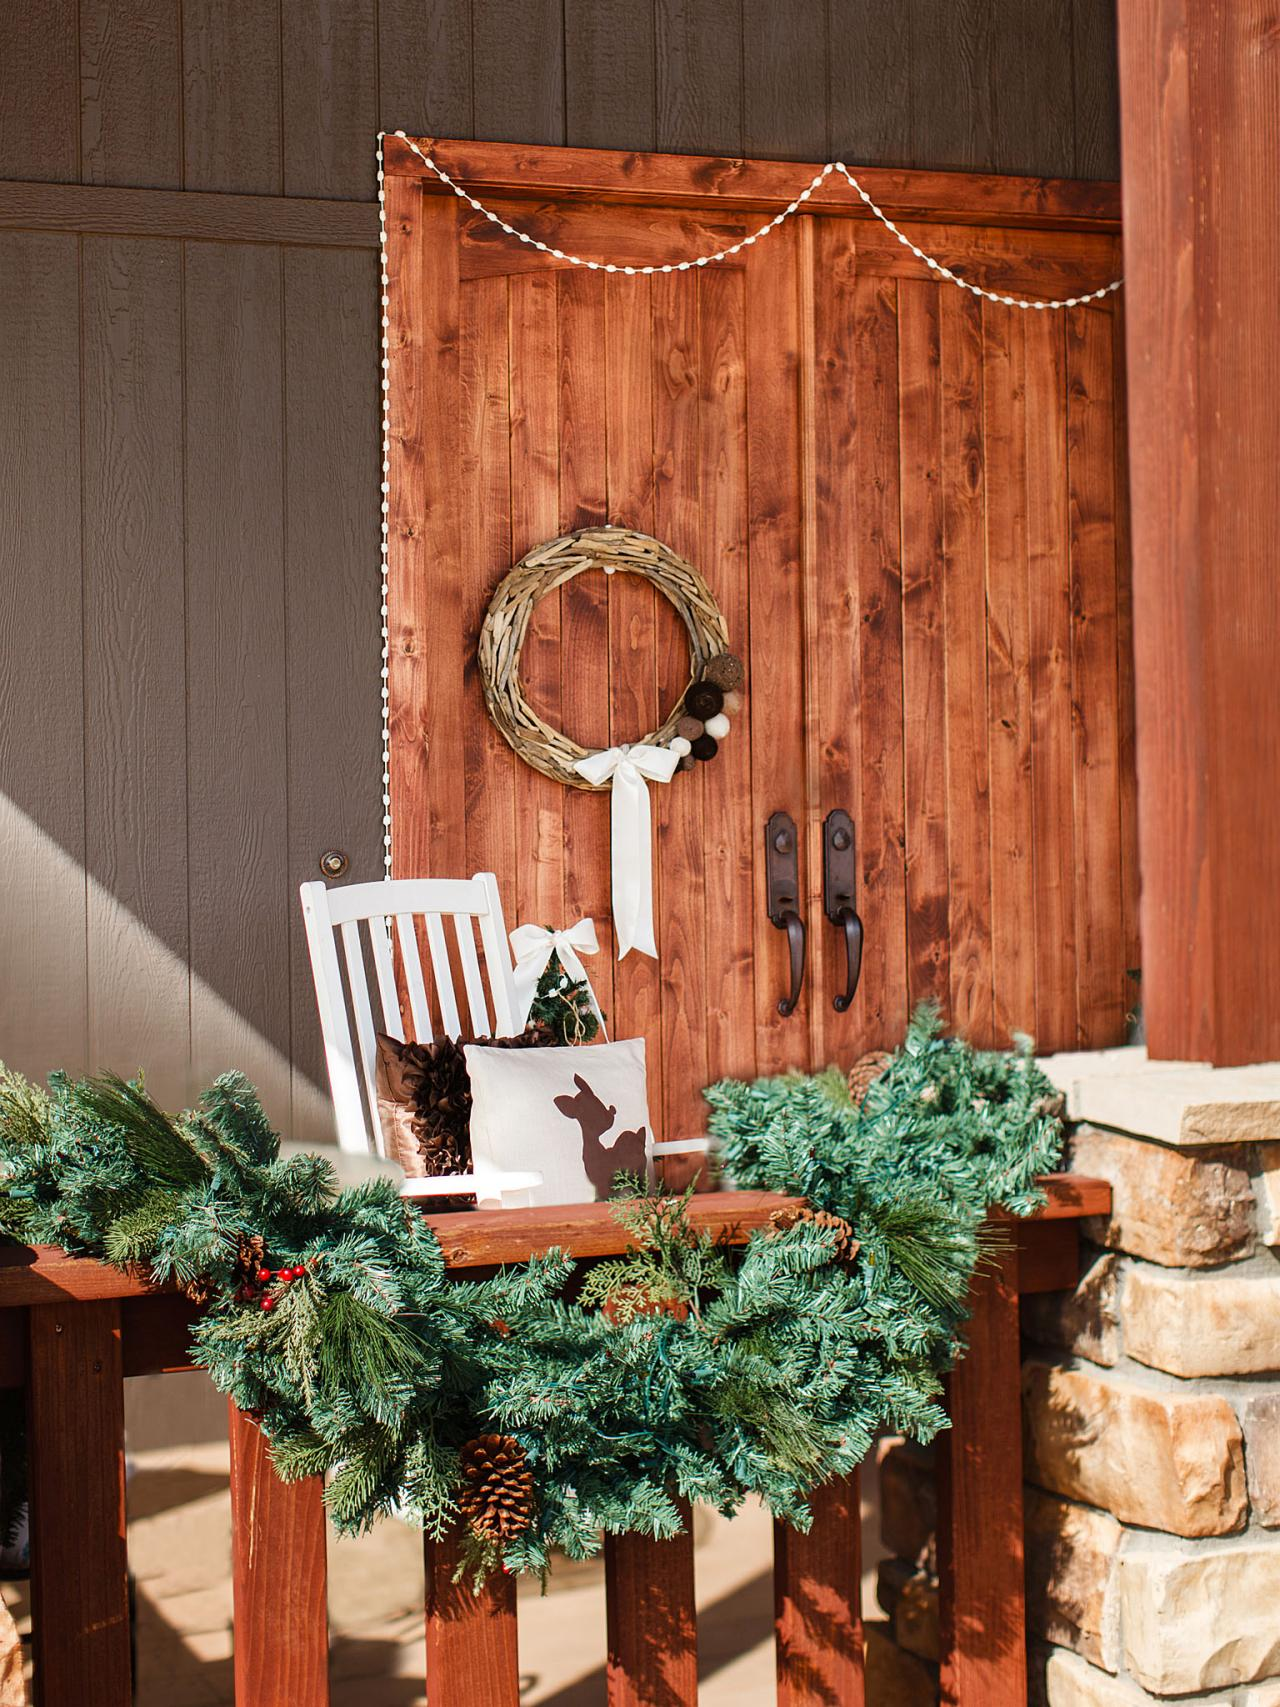 Amazing Holiday Porch Ideas| Holiday Porch Decor, Holiday Porch Decor Ideas, Holiday Porch Decor Christmas Home, Christmas Porch Decorating Ideas, Christmas Porch Ideas #ChristmasPorchDecoratingIDeas #ChristmasPorchIdeas #HolidayPorch #HolidayPorchIdeas